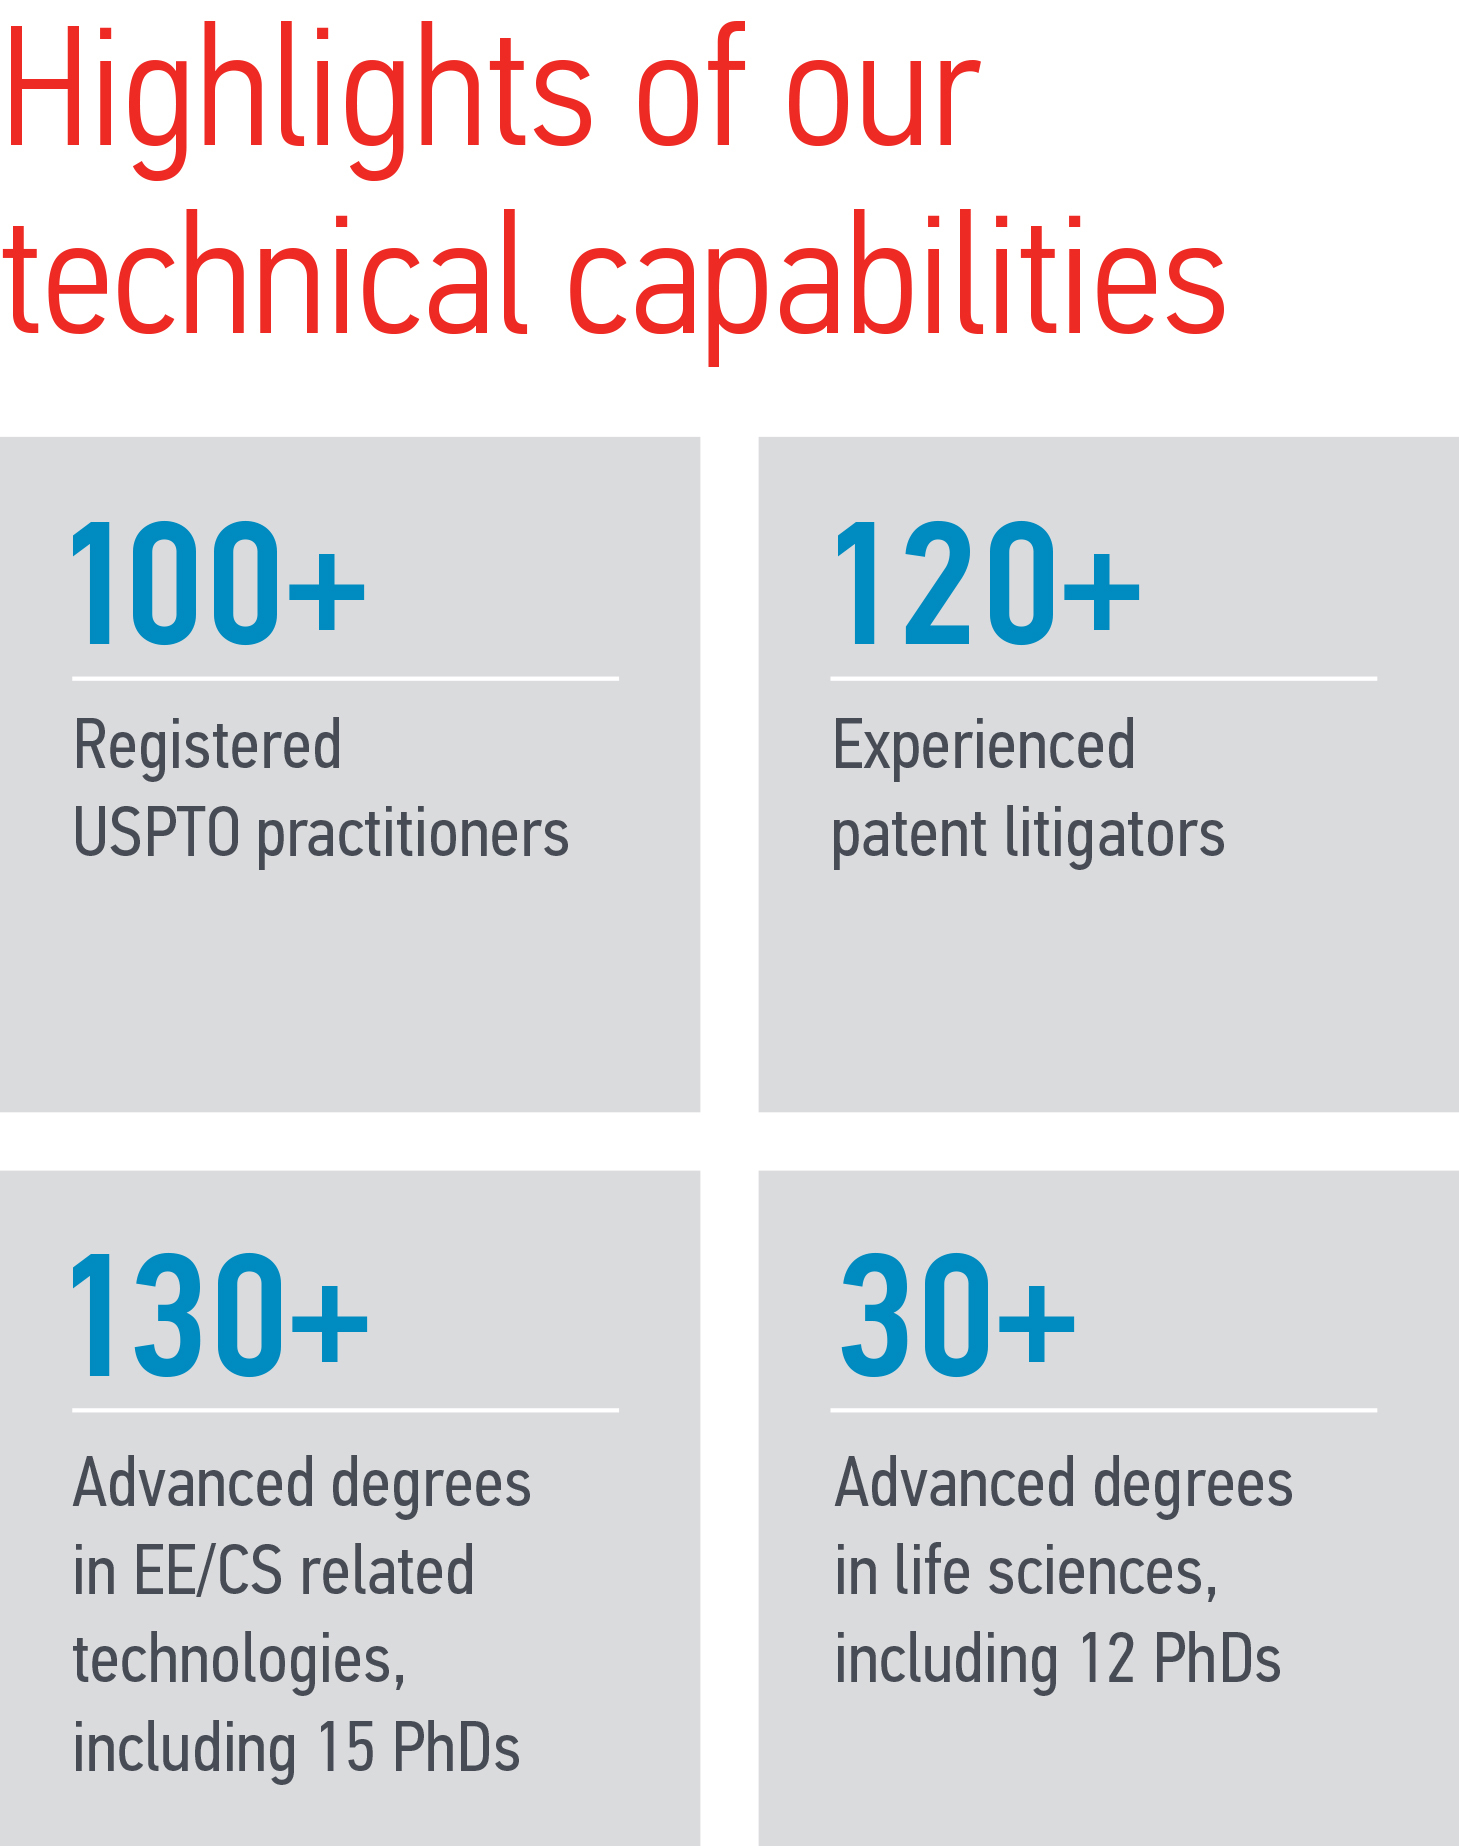 Graphic related to Perkins Coie's technical capabilities